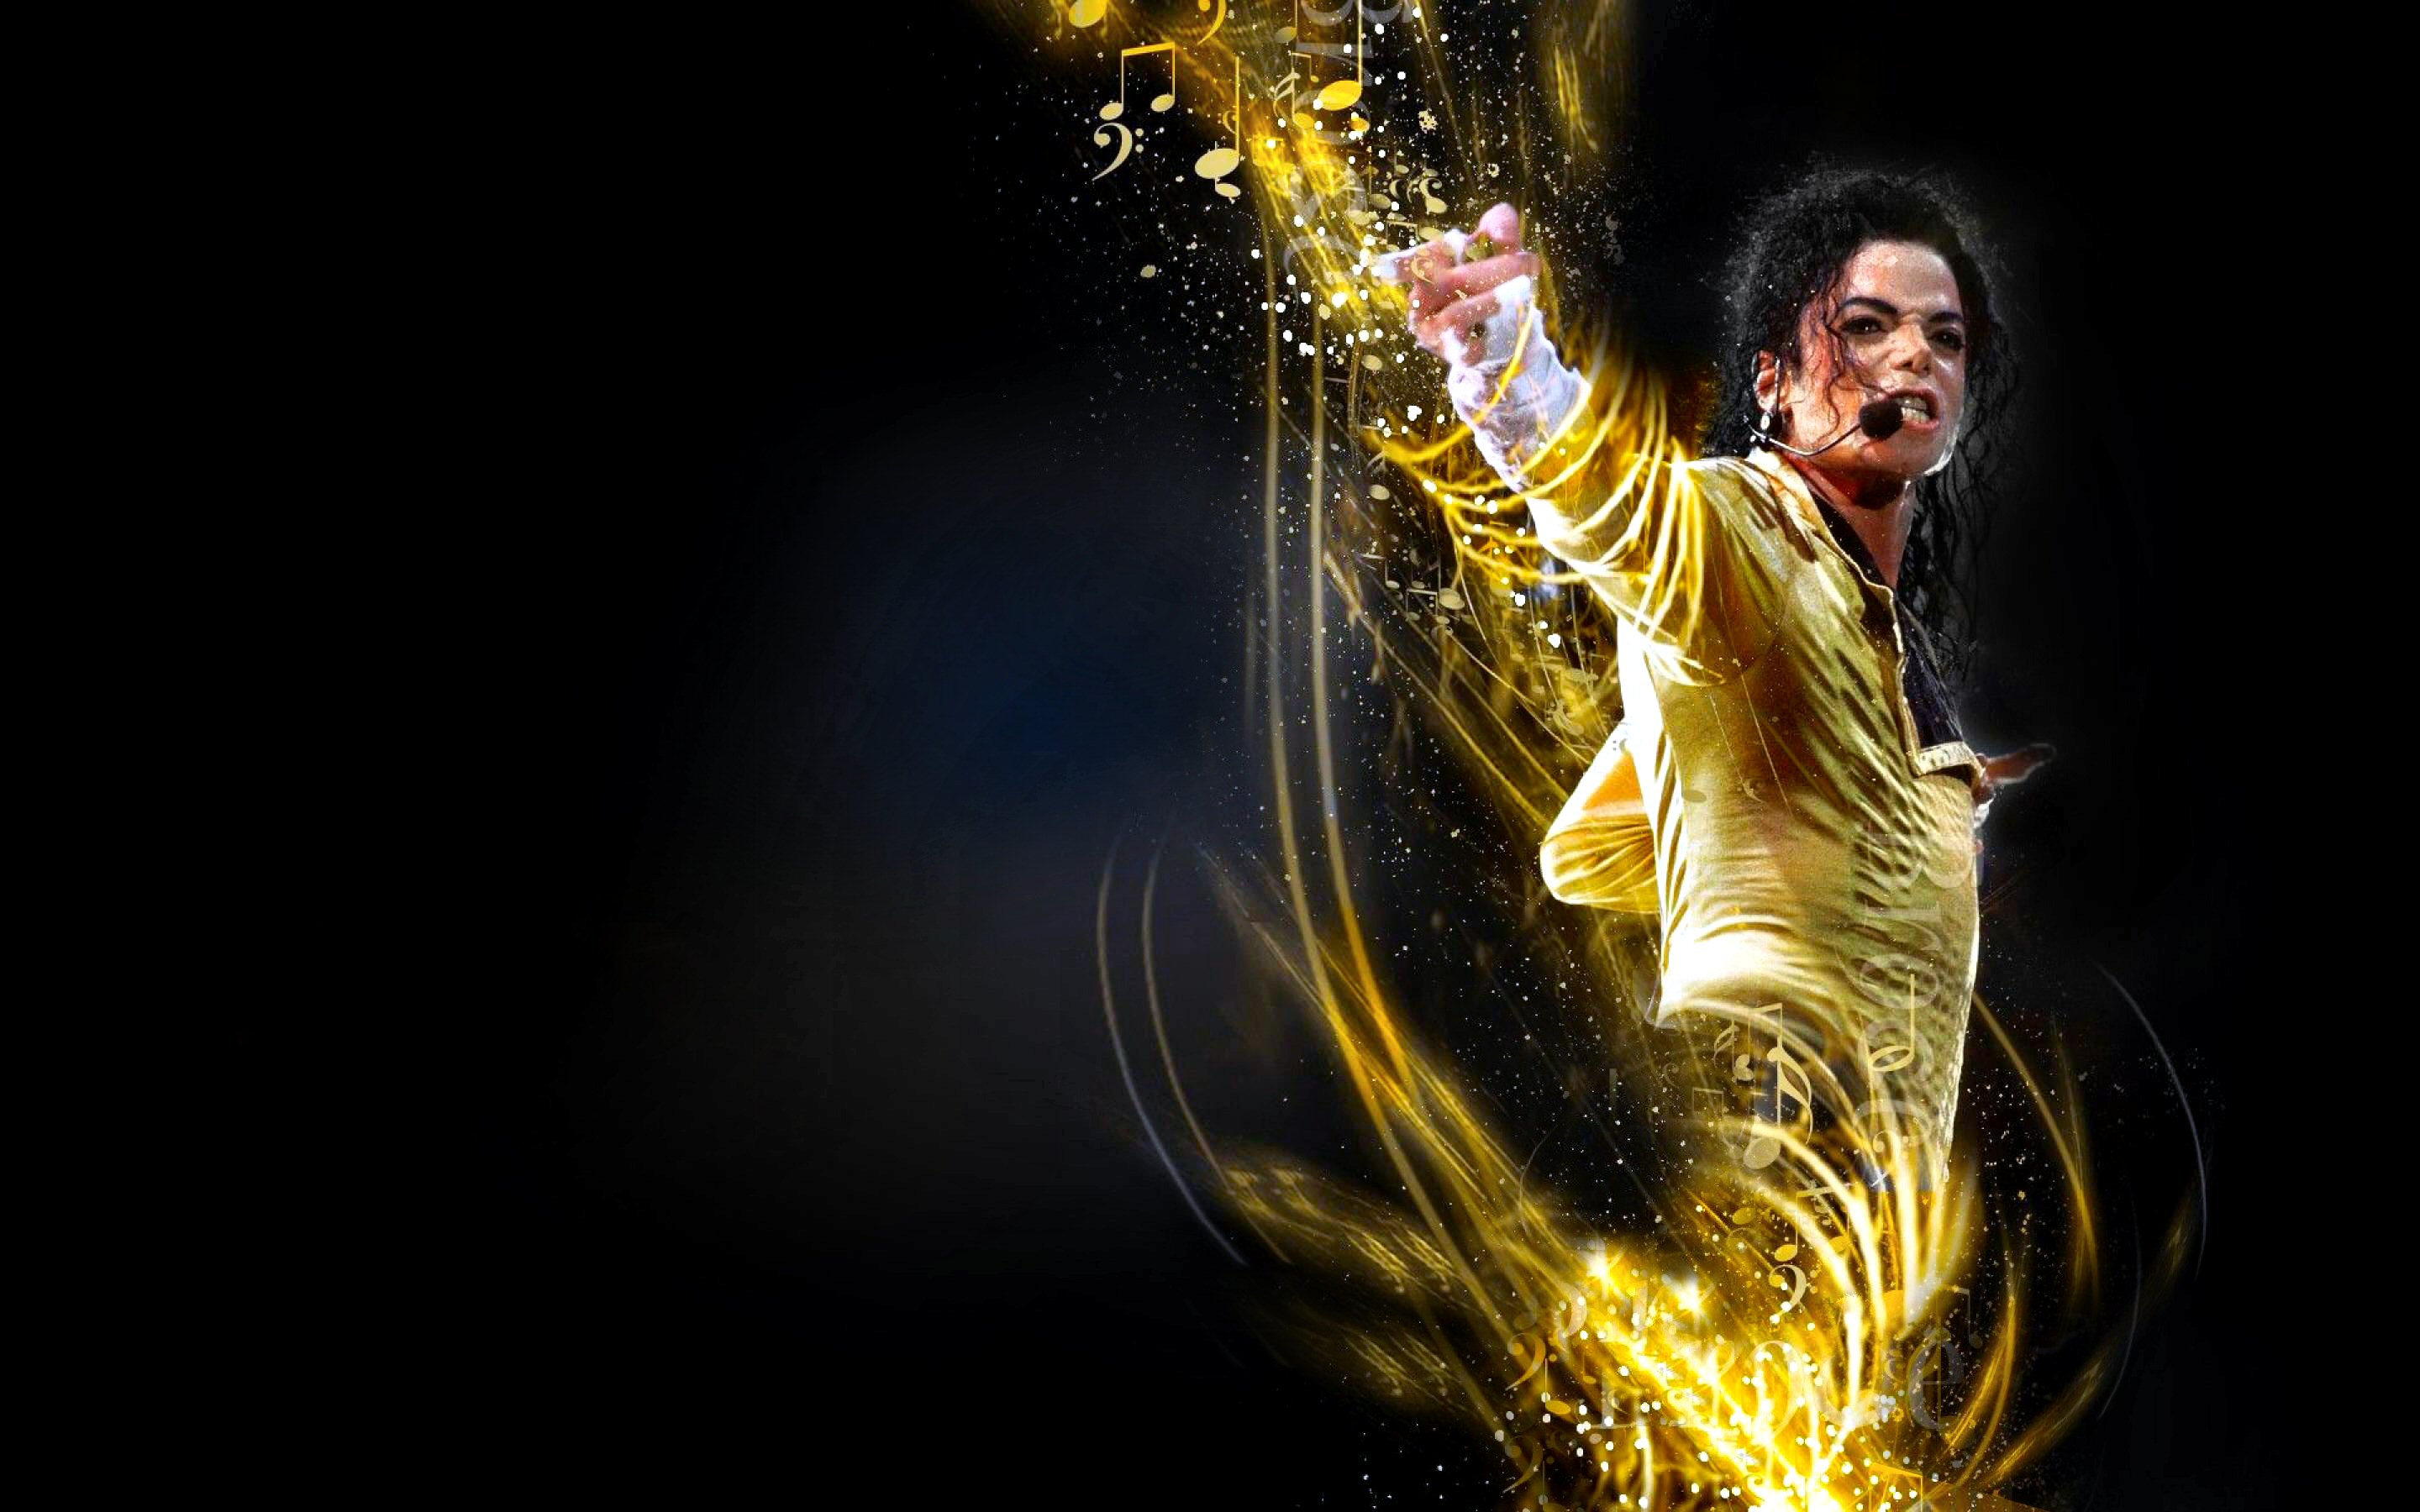 michael jackson wallpapers, pictures, images